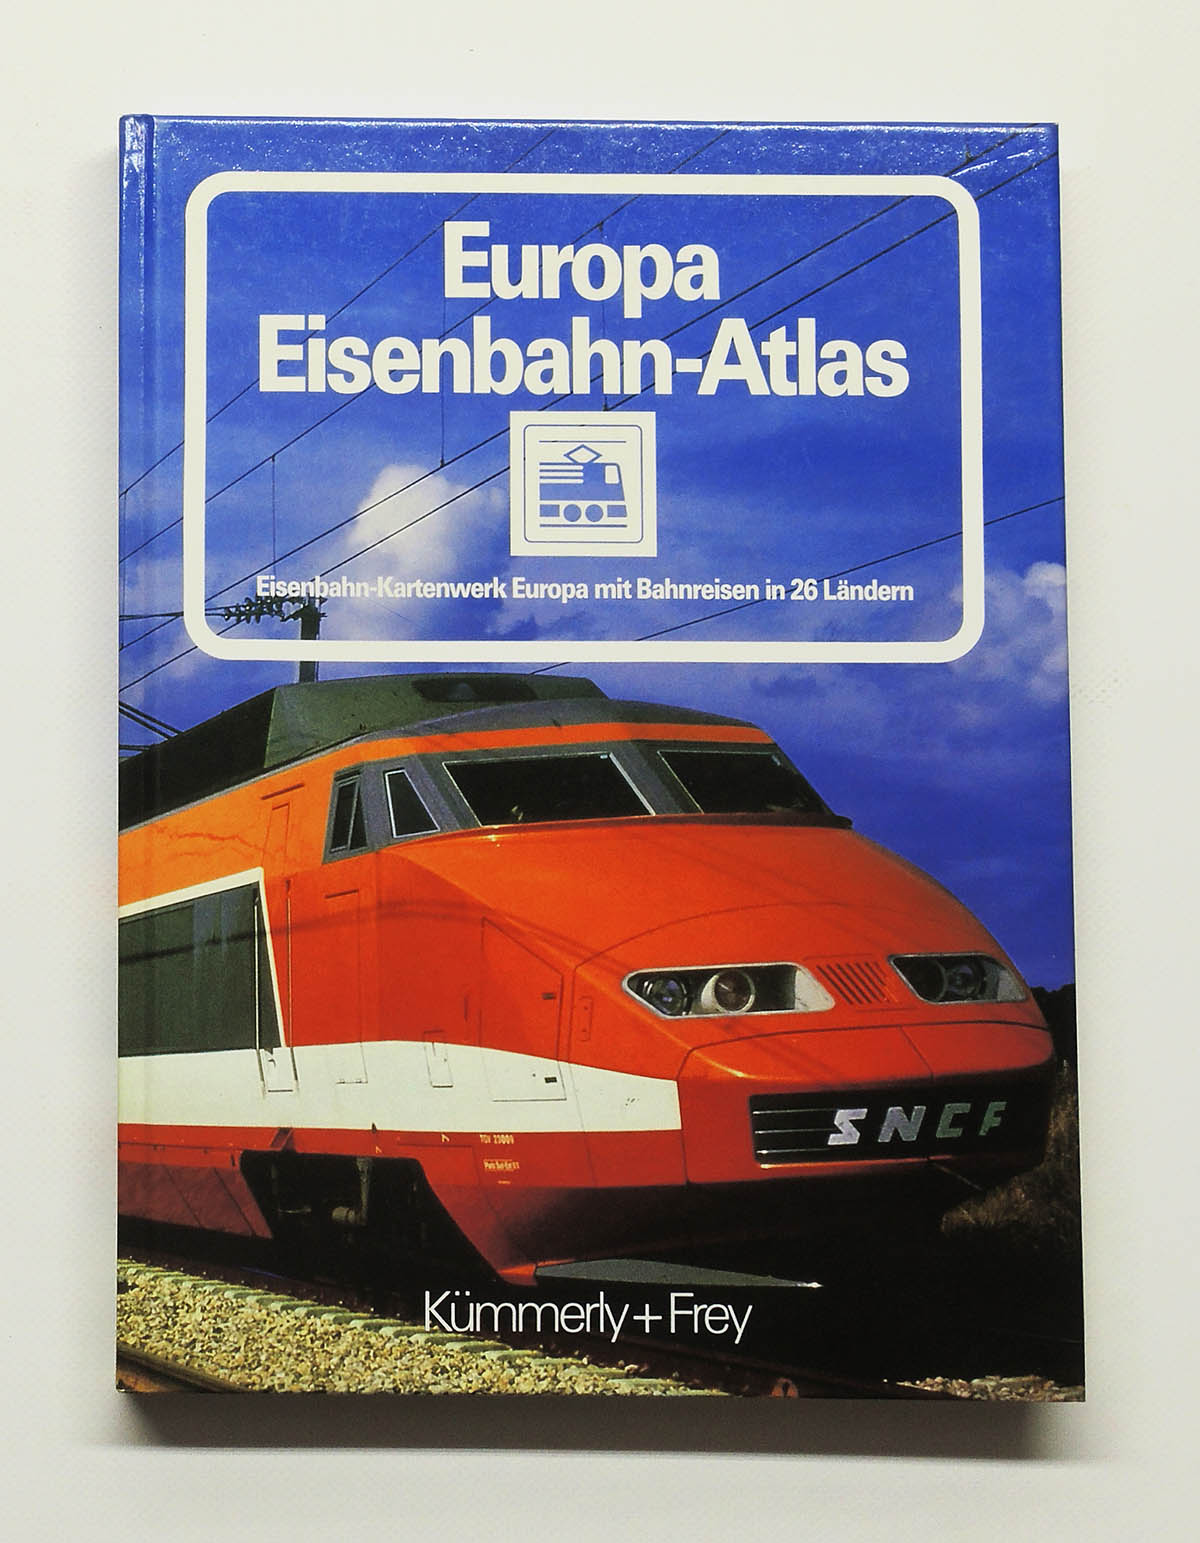 europa eisenbahn atlas eisenbahn kartenwerk mit bahnreisen in 26 l ndern 1983 ebay. Black Bedroom Furniture Sets. Home Design Ideas